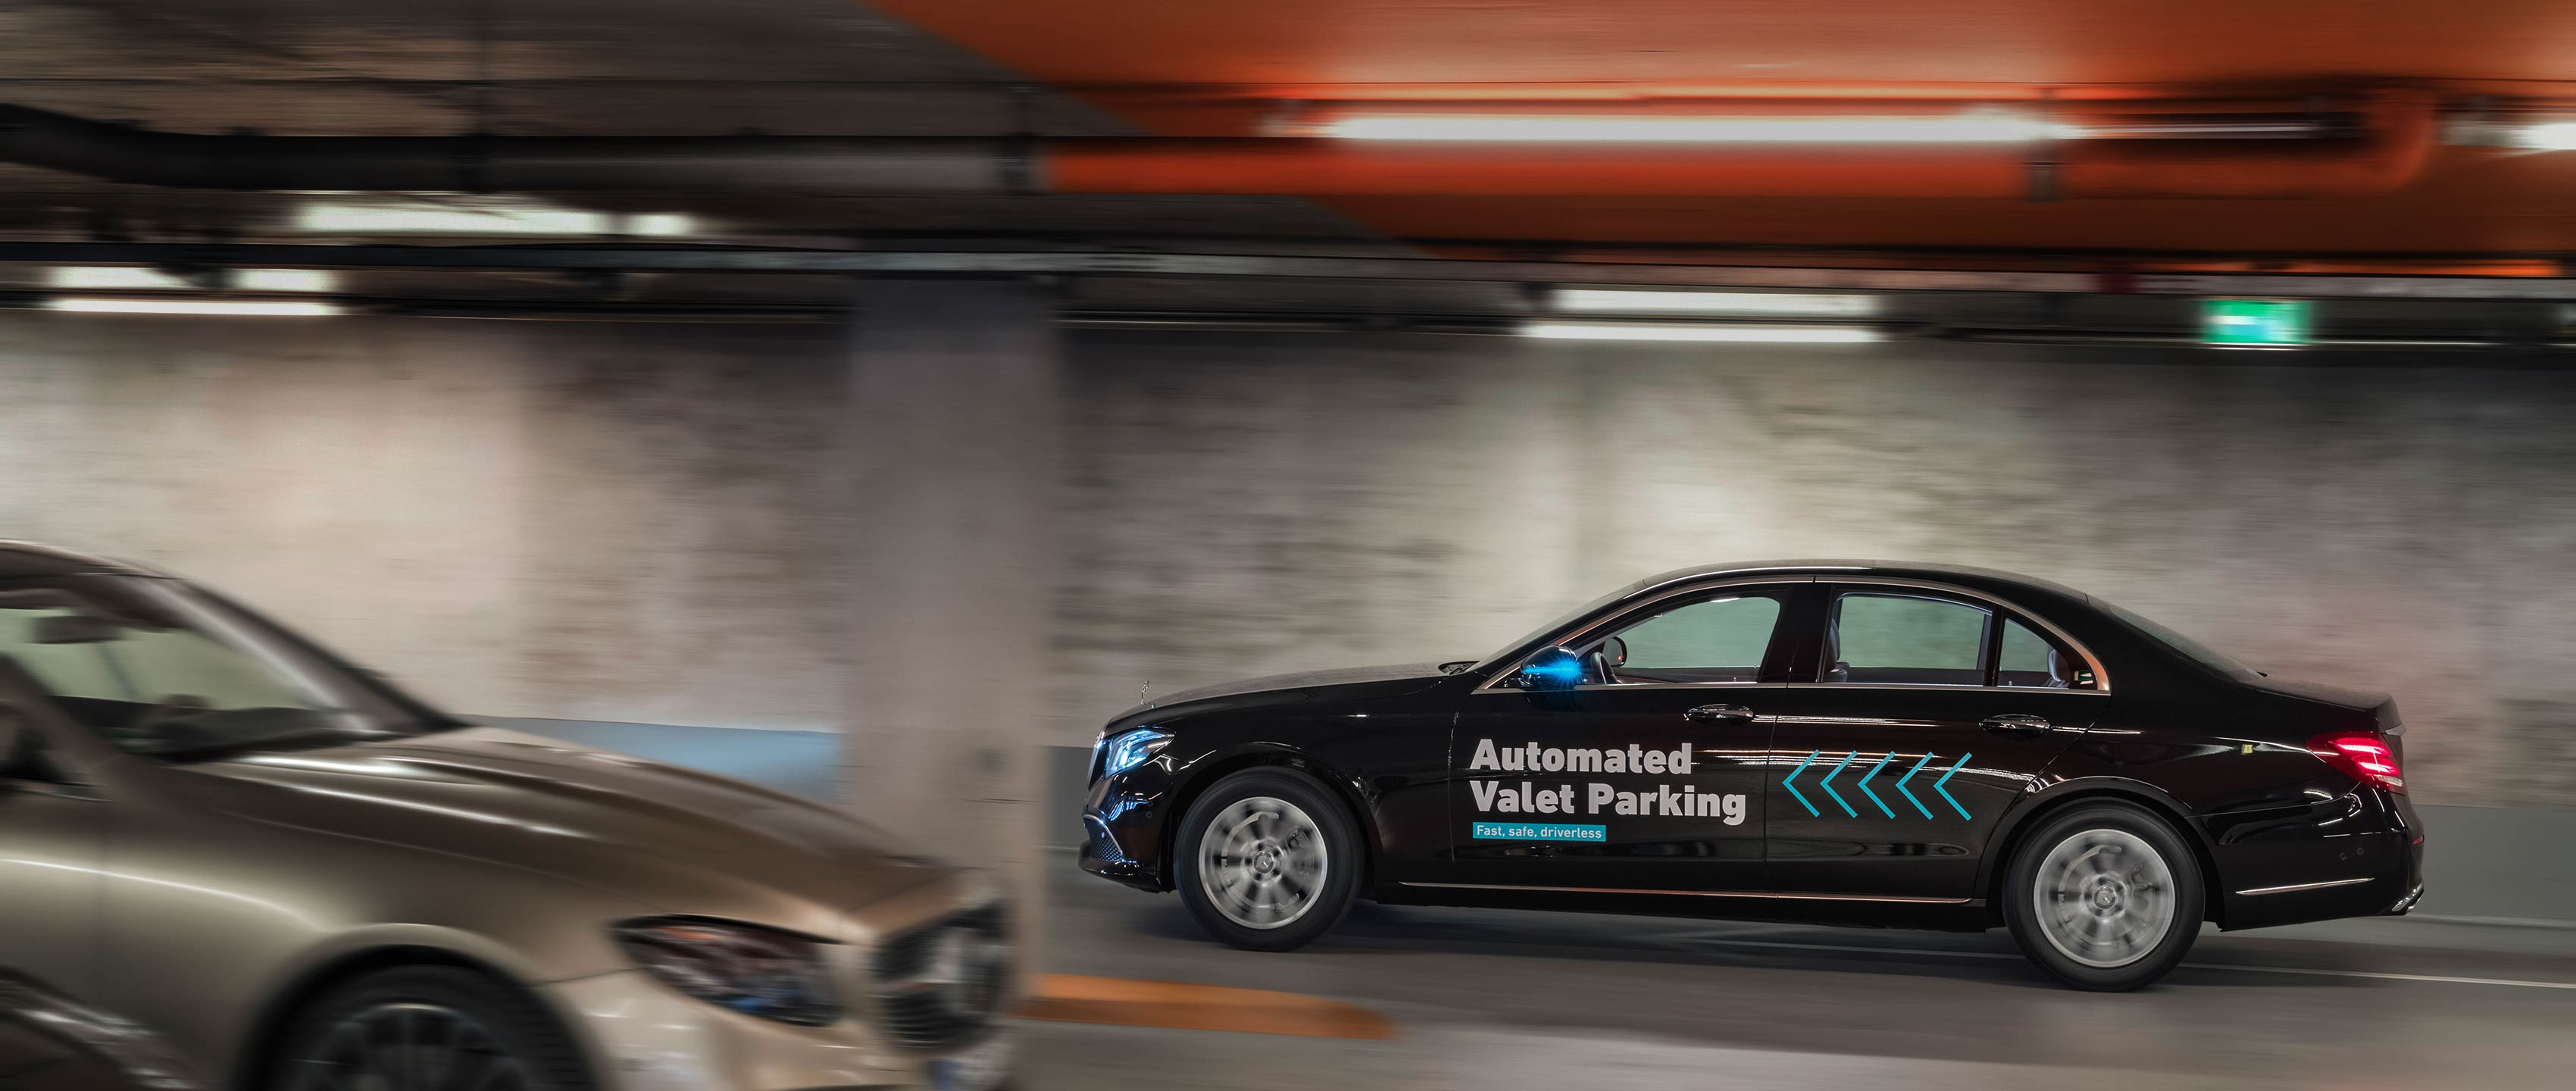 Daimler and Bosch Team up to Launch Driverless Parking